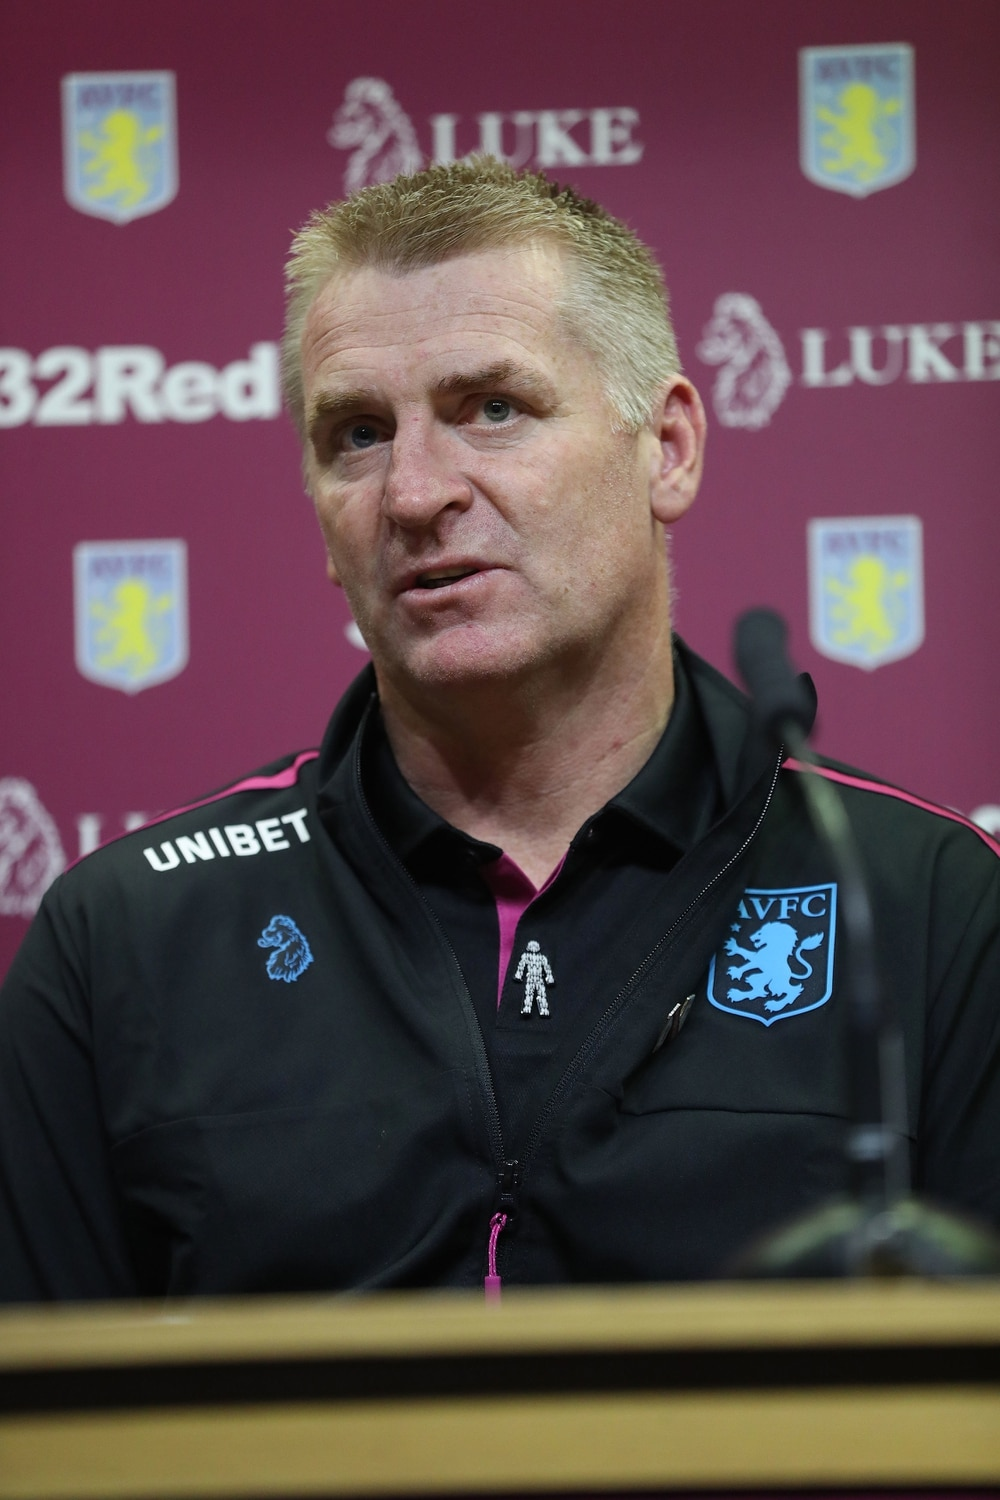 Championship play-off final: Dean Smith addresses the media ahead of Aston Villa's Wembley trip - VIDEO